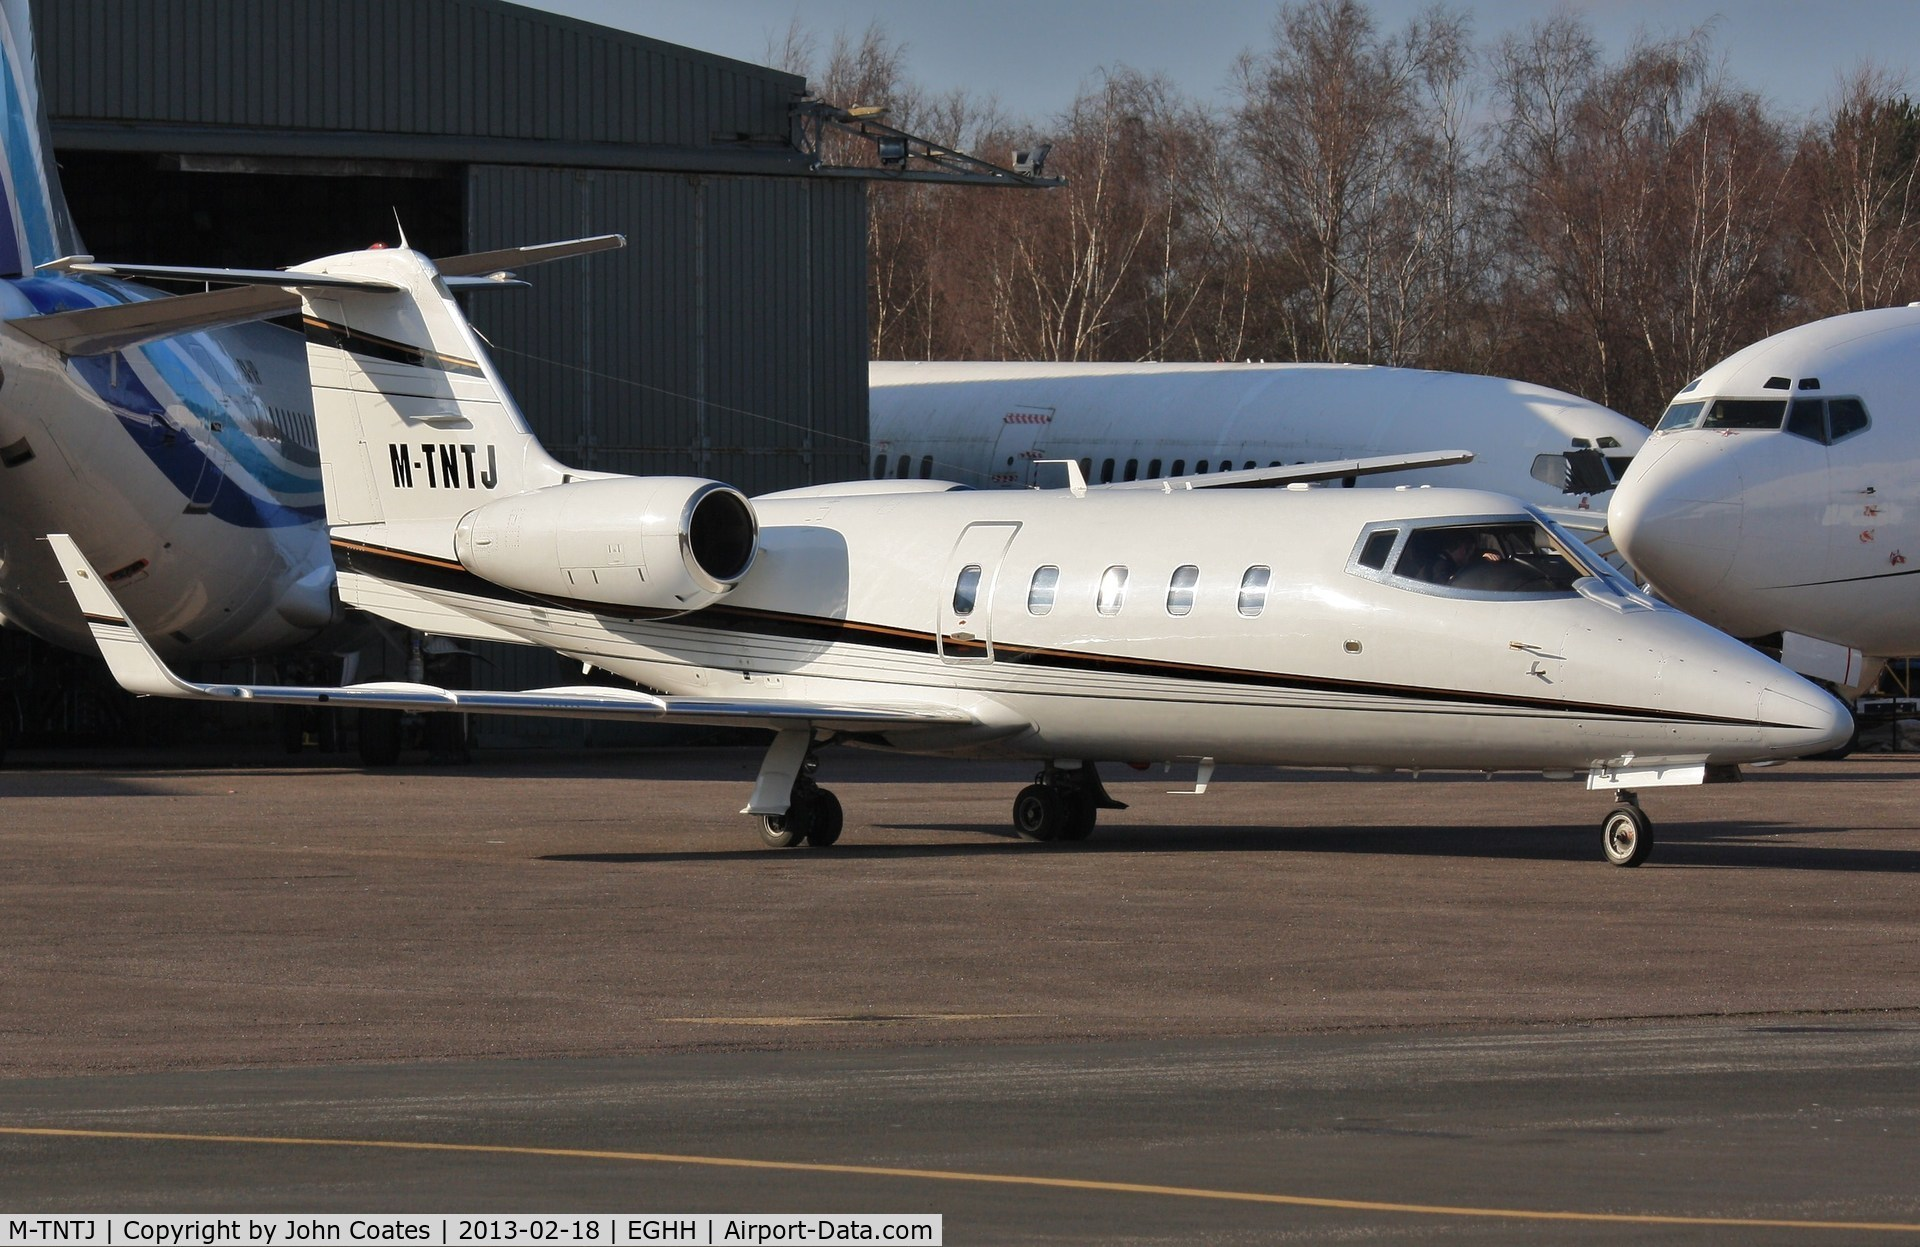 M-TNTJ, 1983 Learjet 55 C/N 55-087, Parling up on European ramp with crew for OO-TNQ